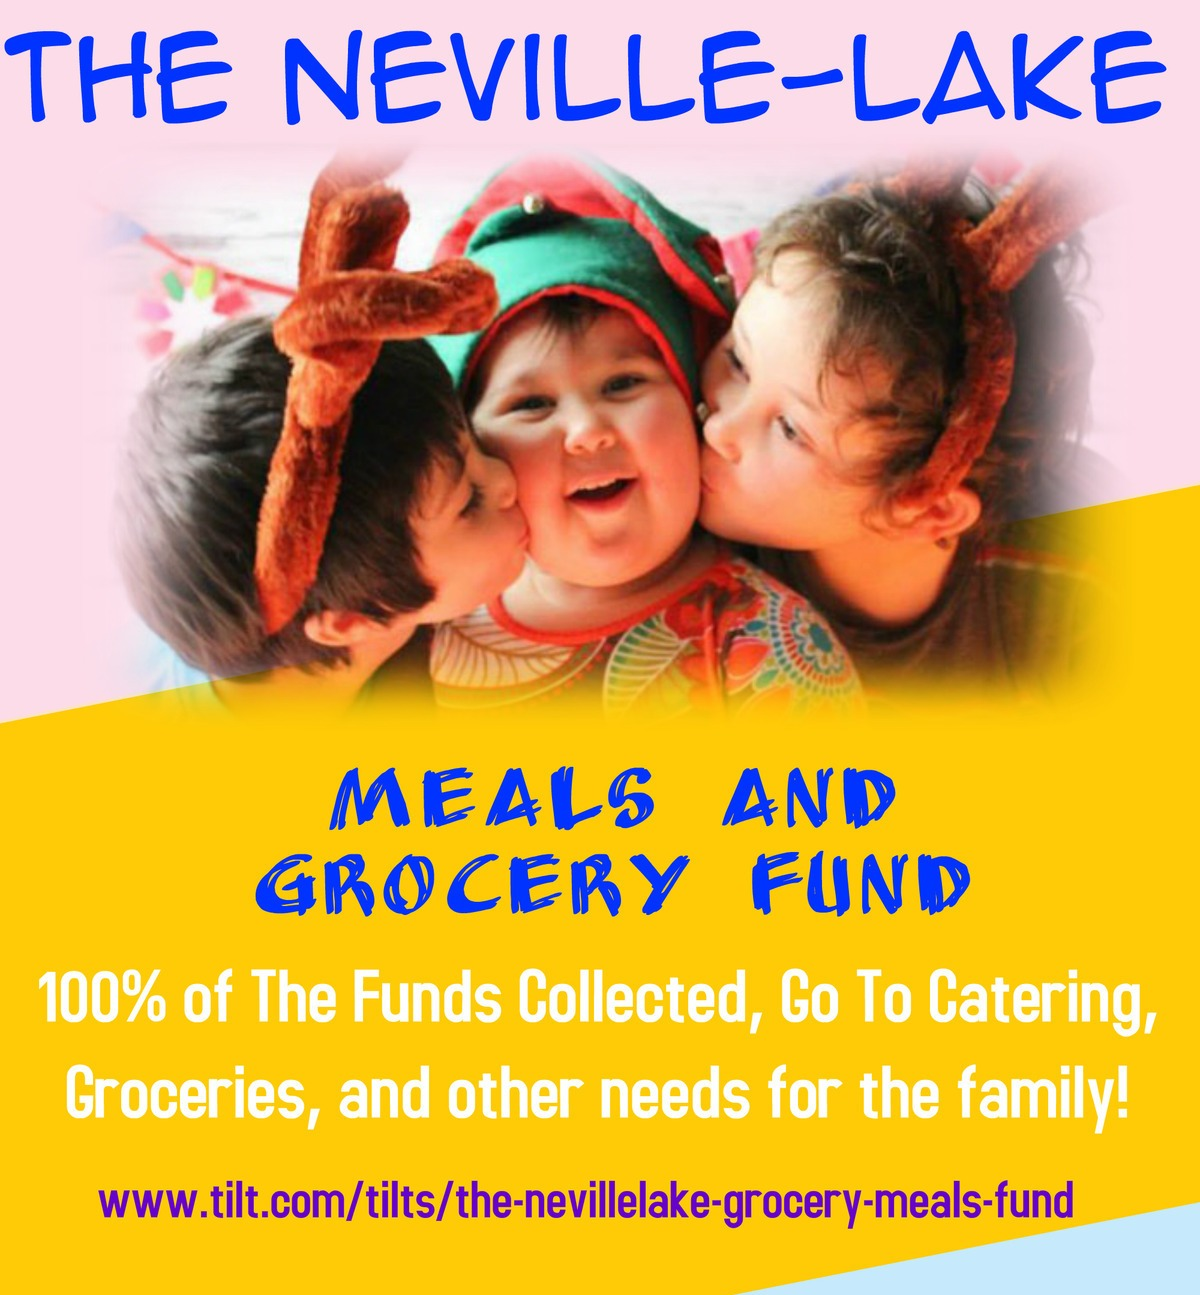 Please Donate to The Neville-Lake Family